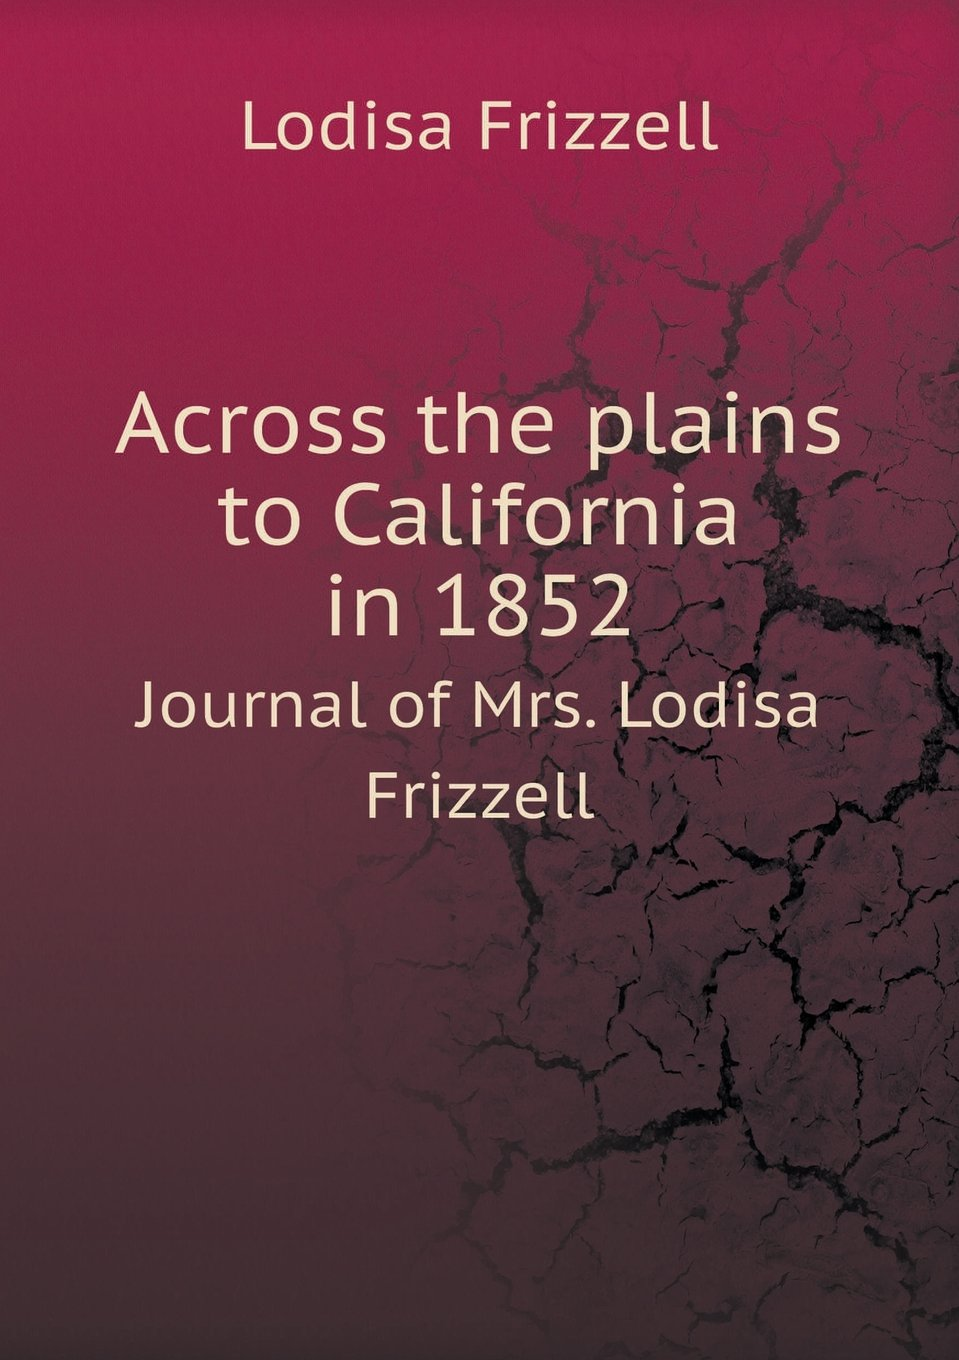 Across the plains to California in 1852 Journal of Mrs. Lodisa Frizzell PDF